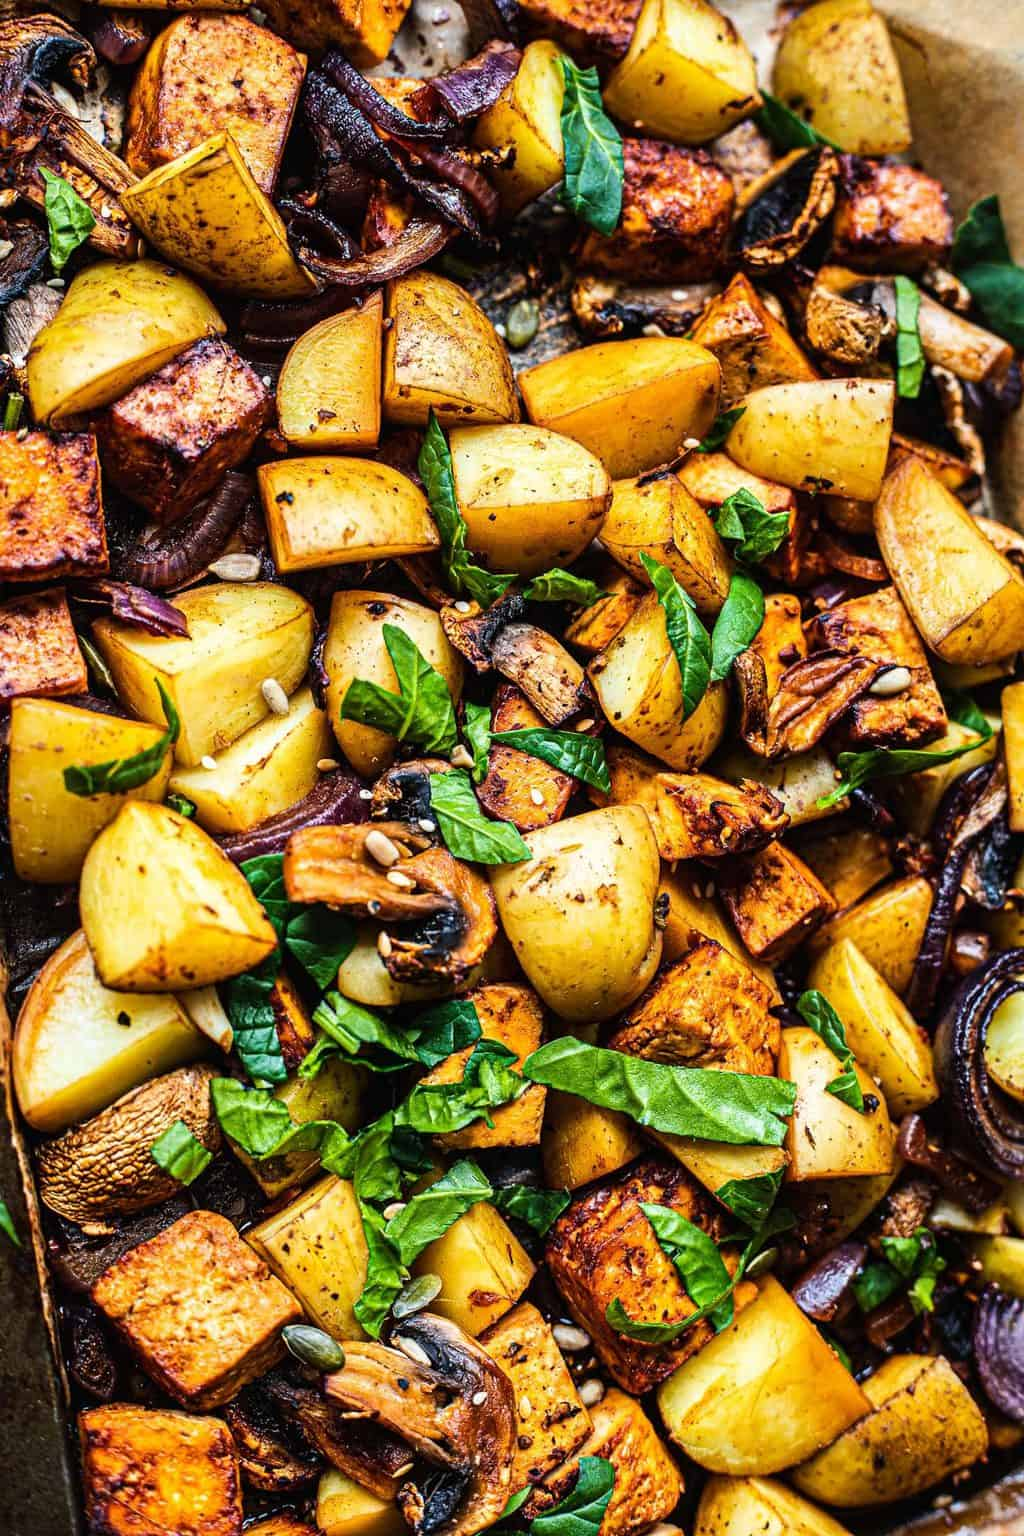 Potatoes tofu and mushrooms on a baking tray